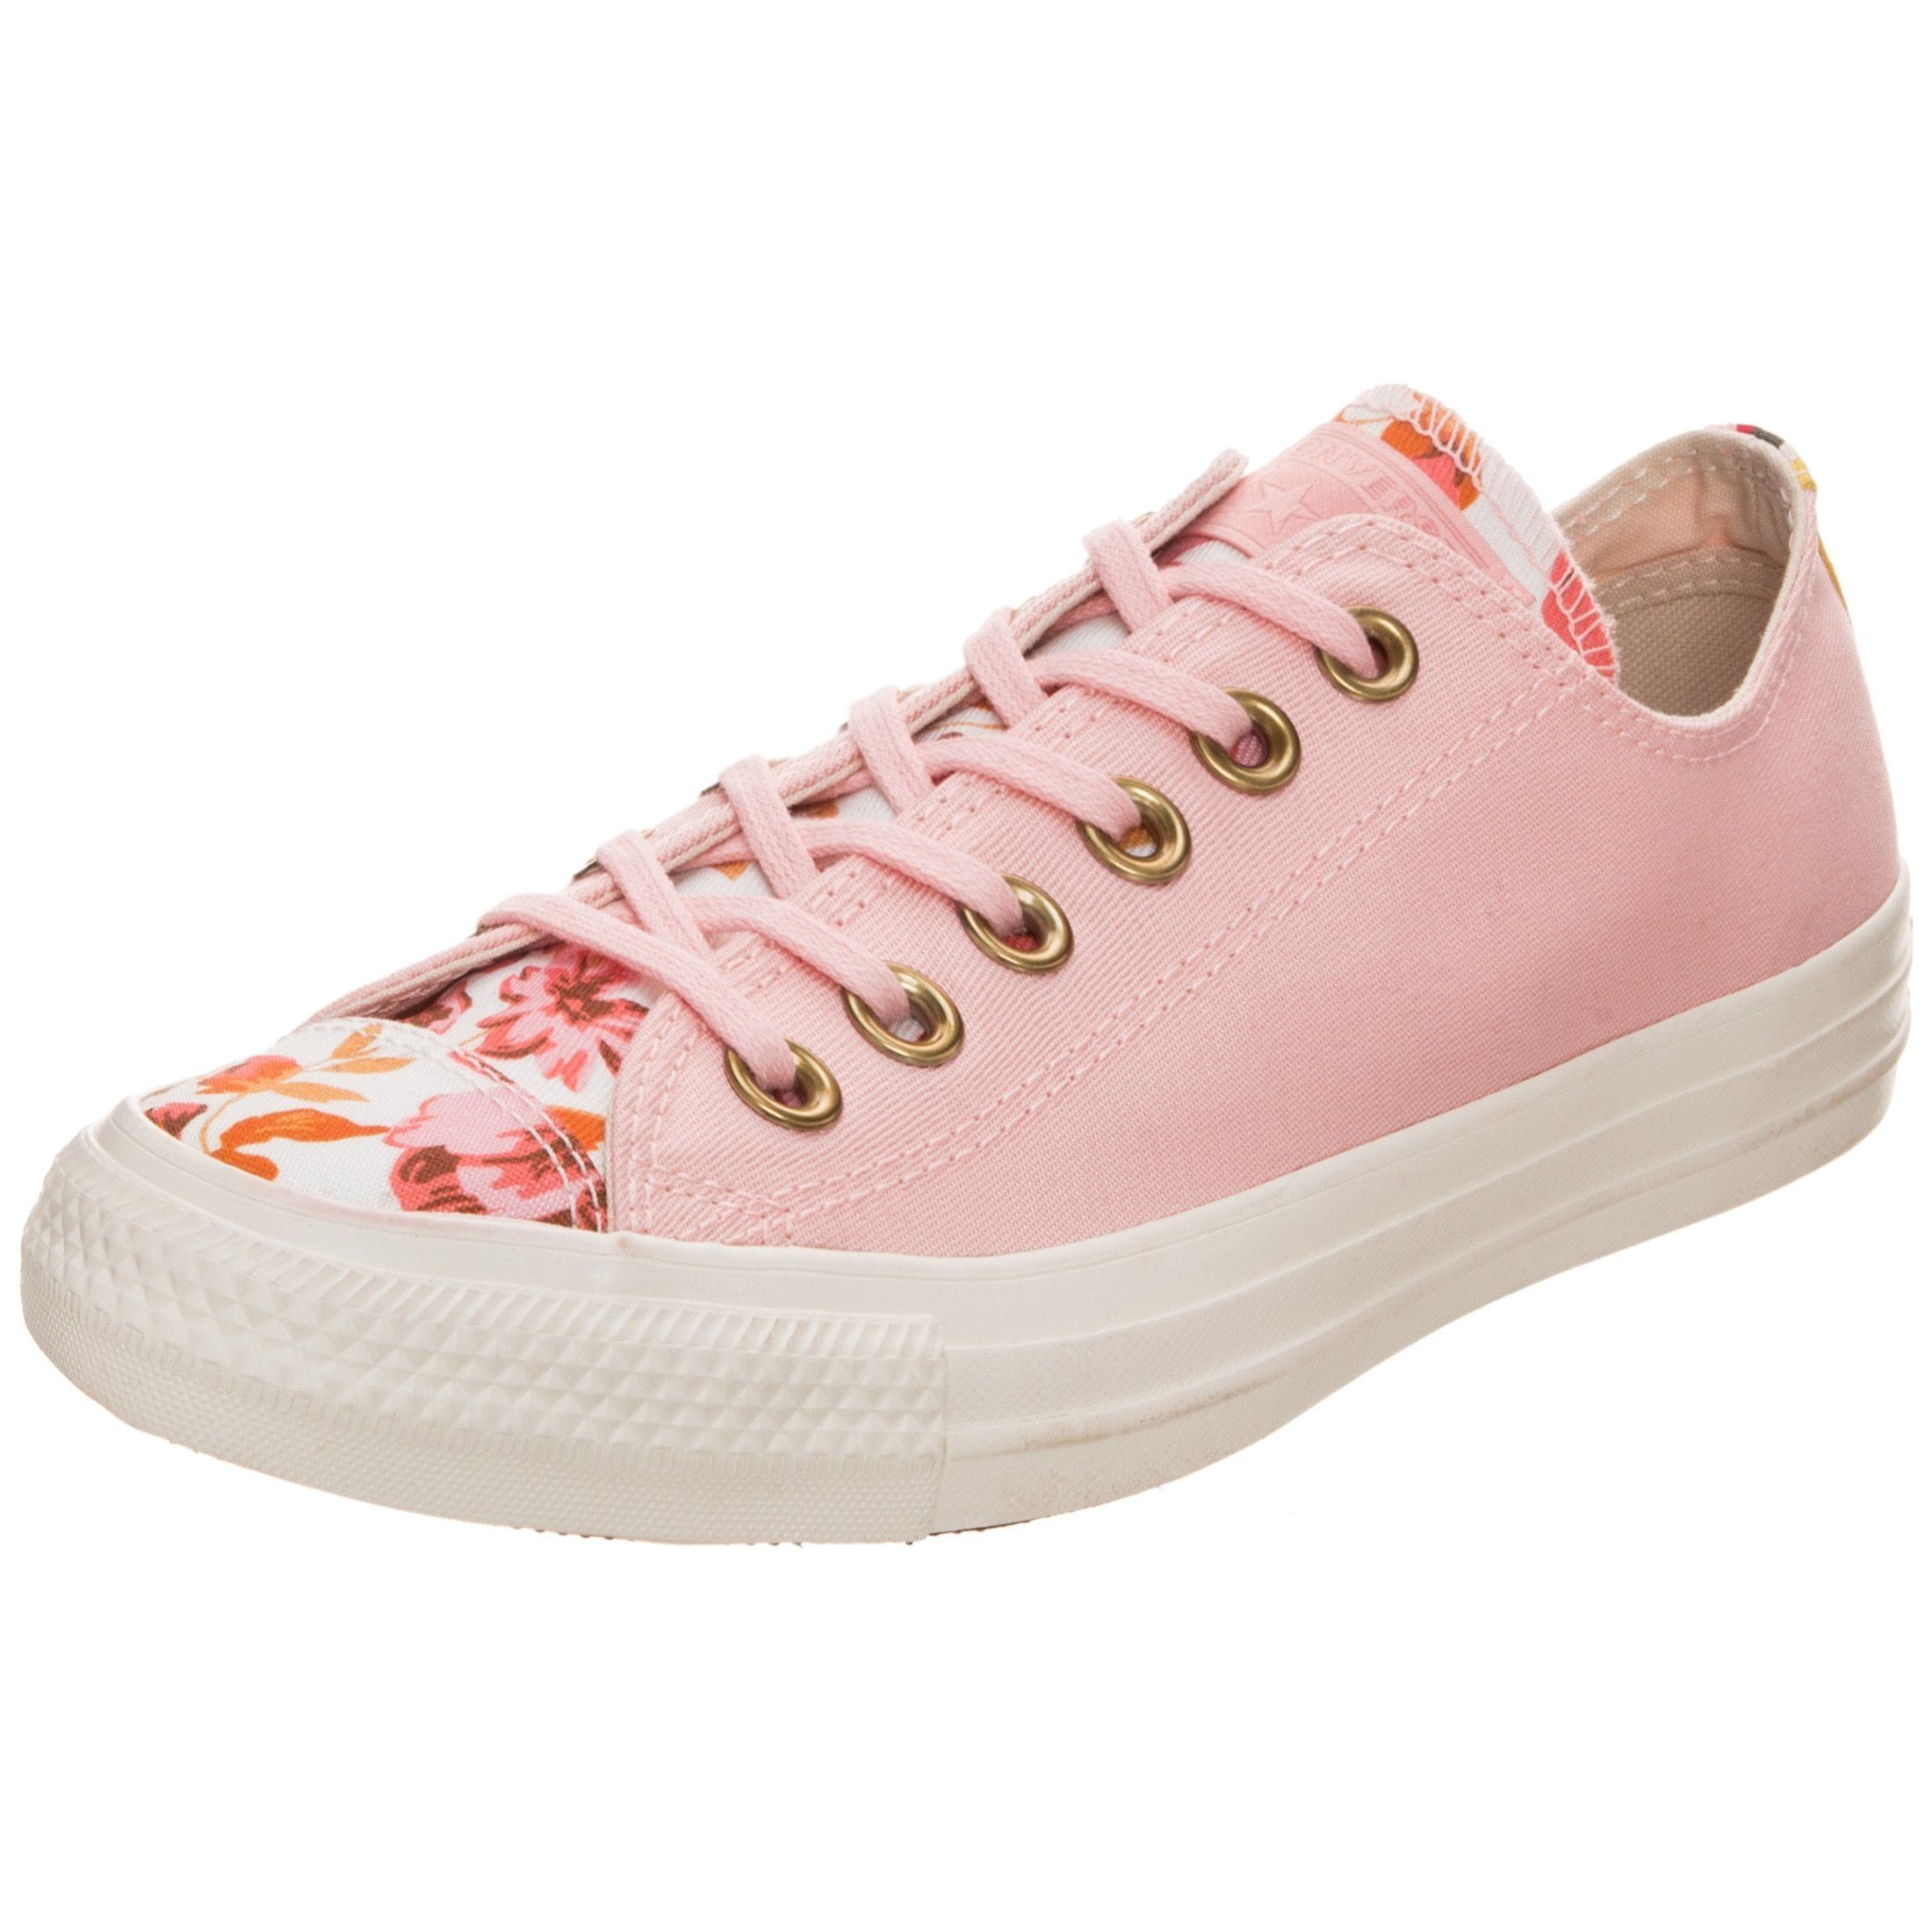 converse -  Sneaker Chuck Taylor All Star Parkway Floral